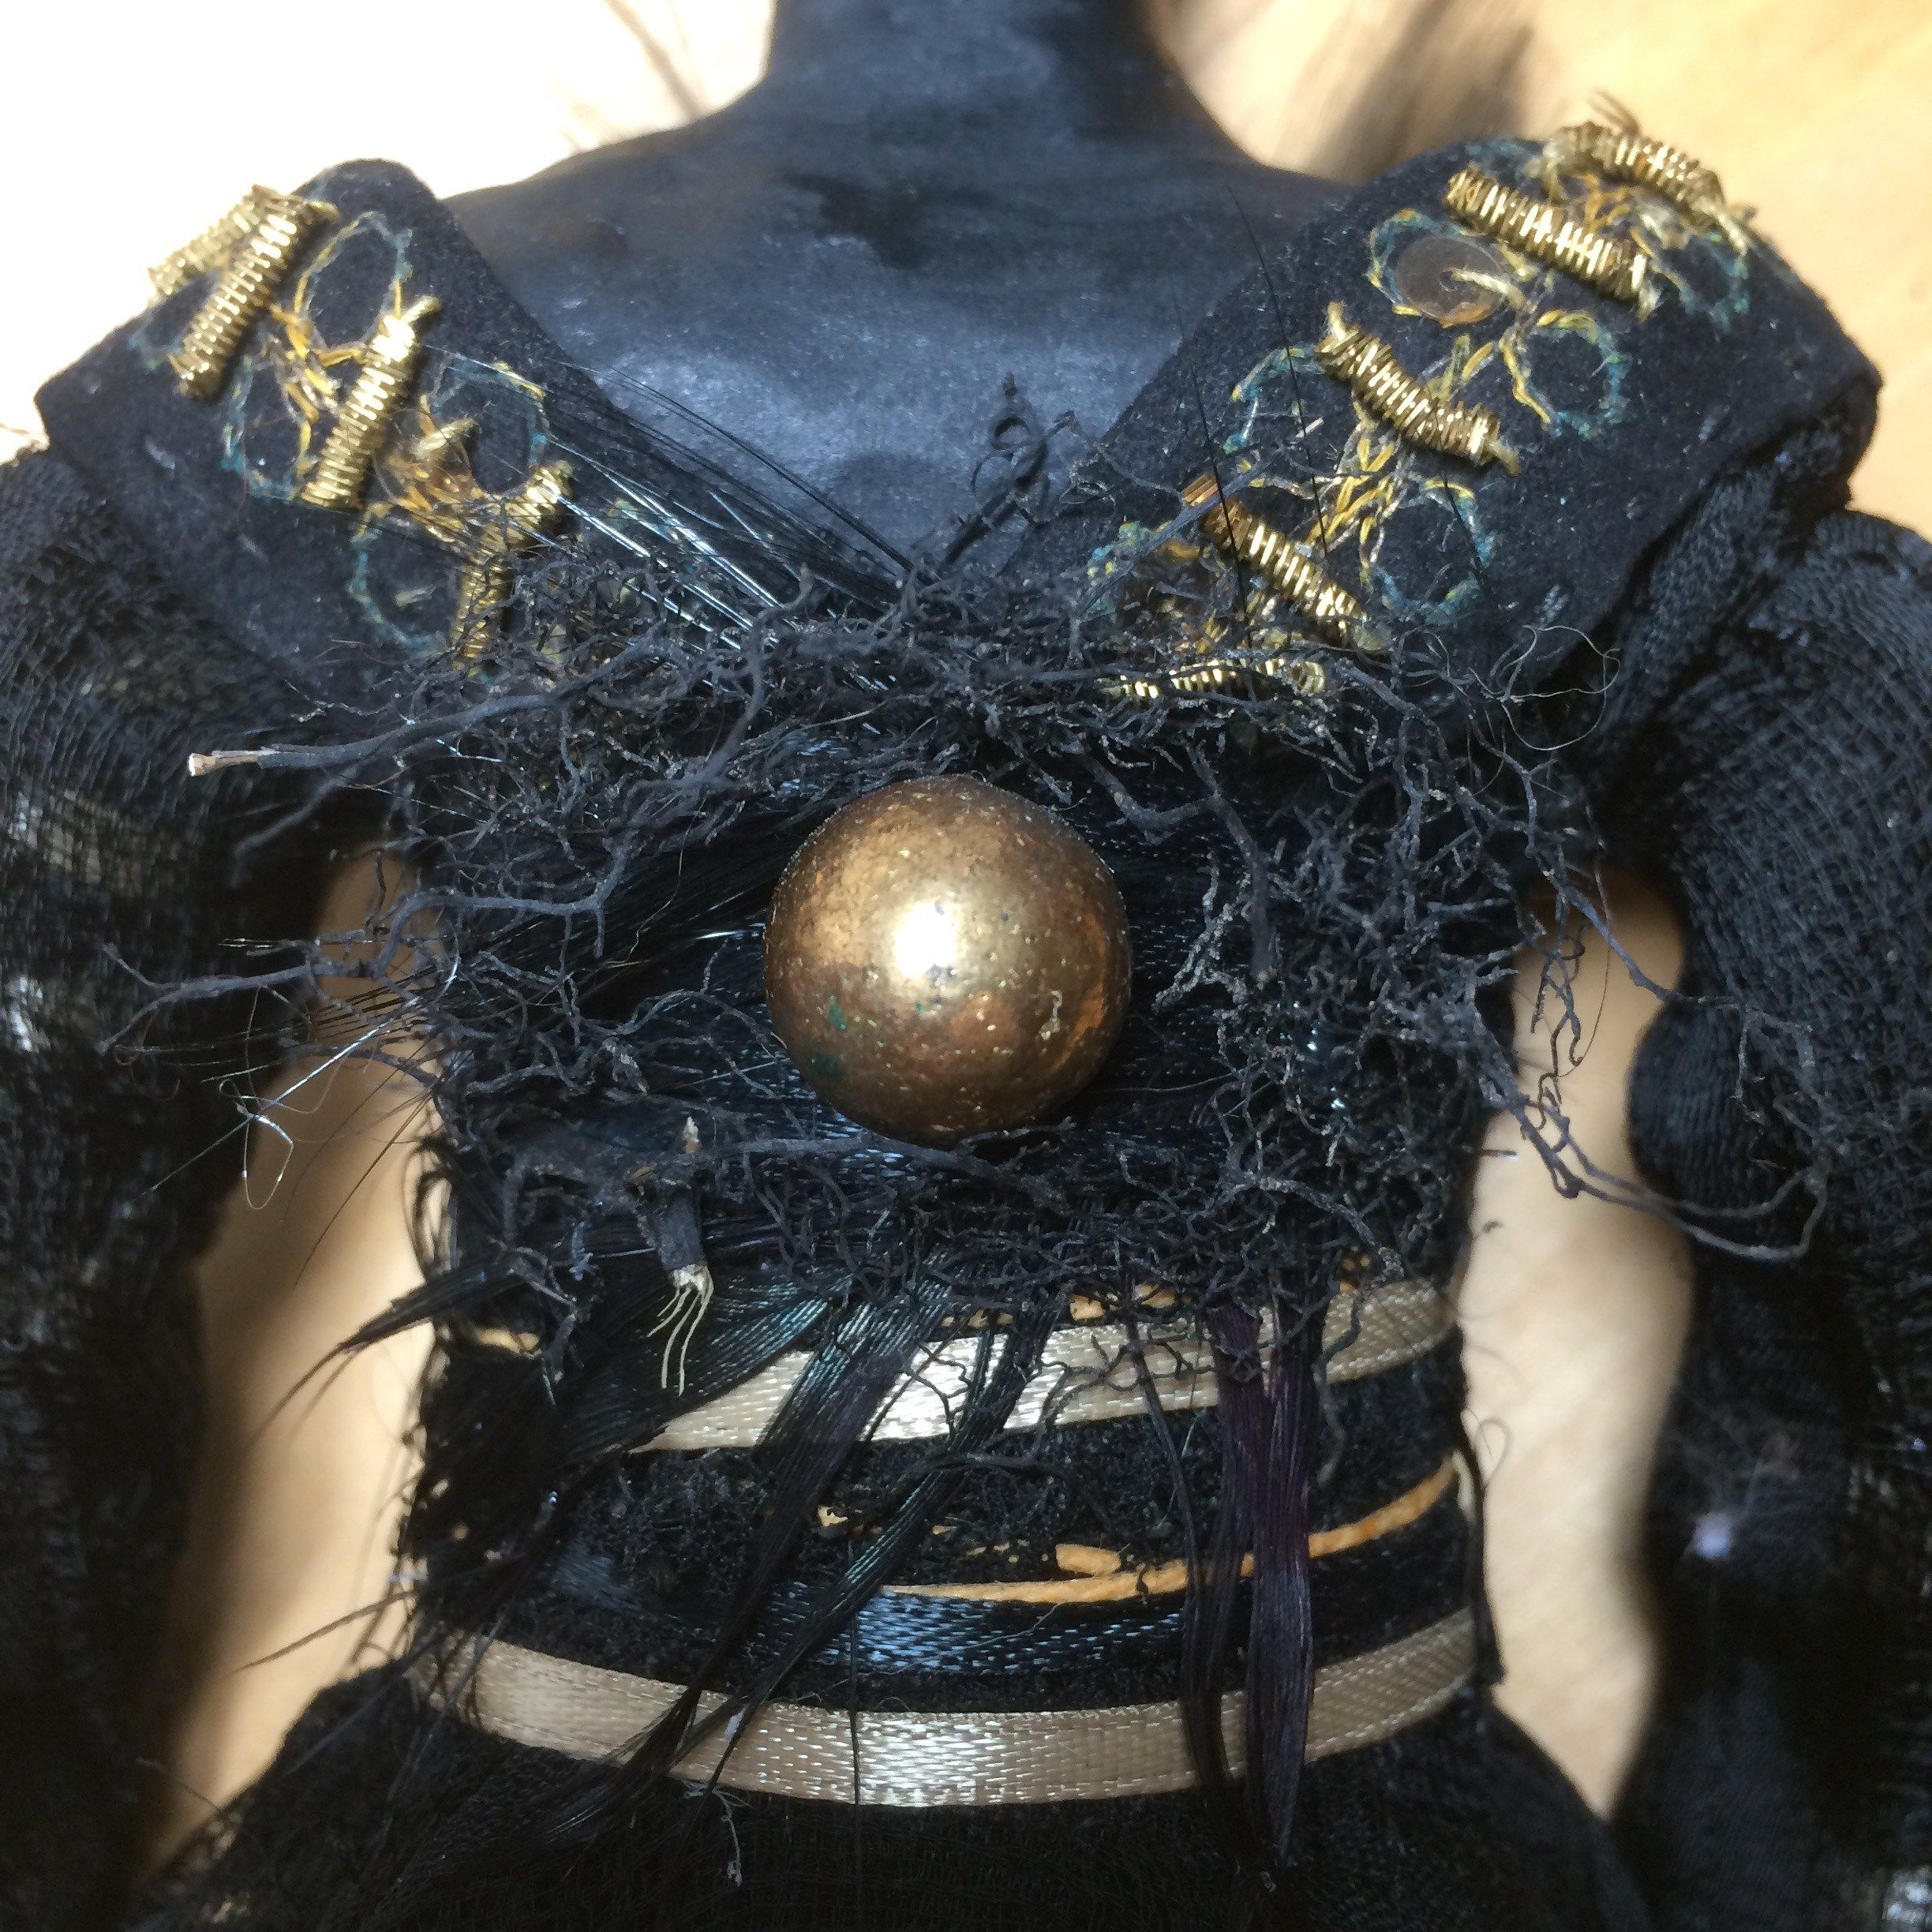 Detail of Black Beauty rabbit art doll. Made from vintage black suede gloves with gold wire trim and button, black gauze scarf, 1950's vintage hat feathers, beads, black roots from a fallen tree, ribbon, hemp twine, paper cl…